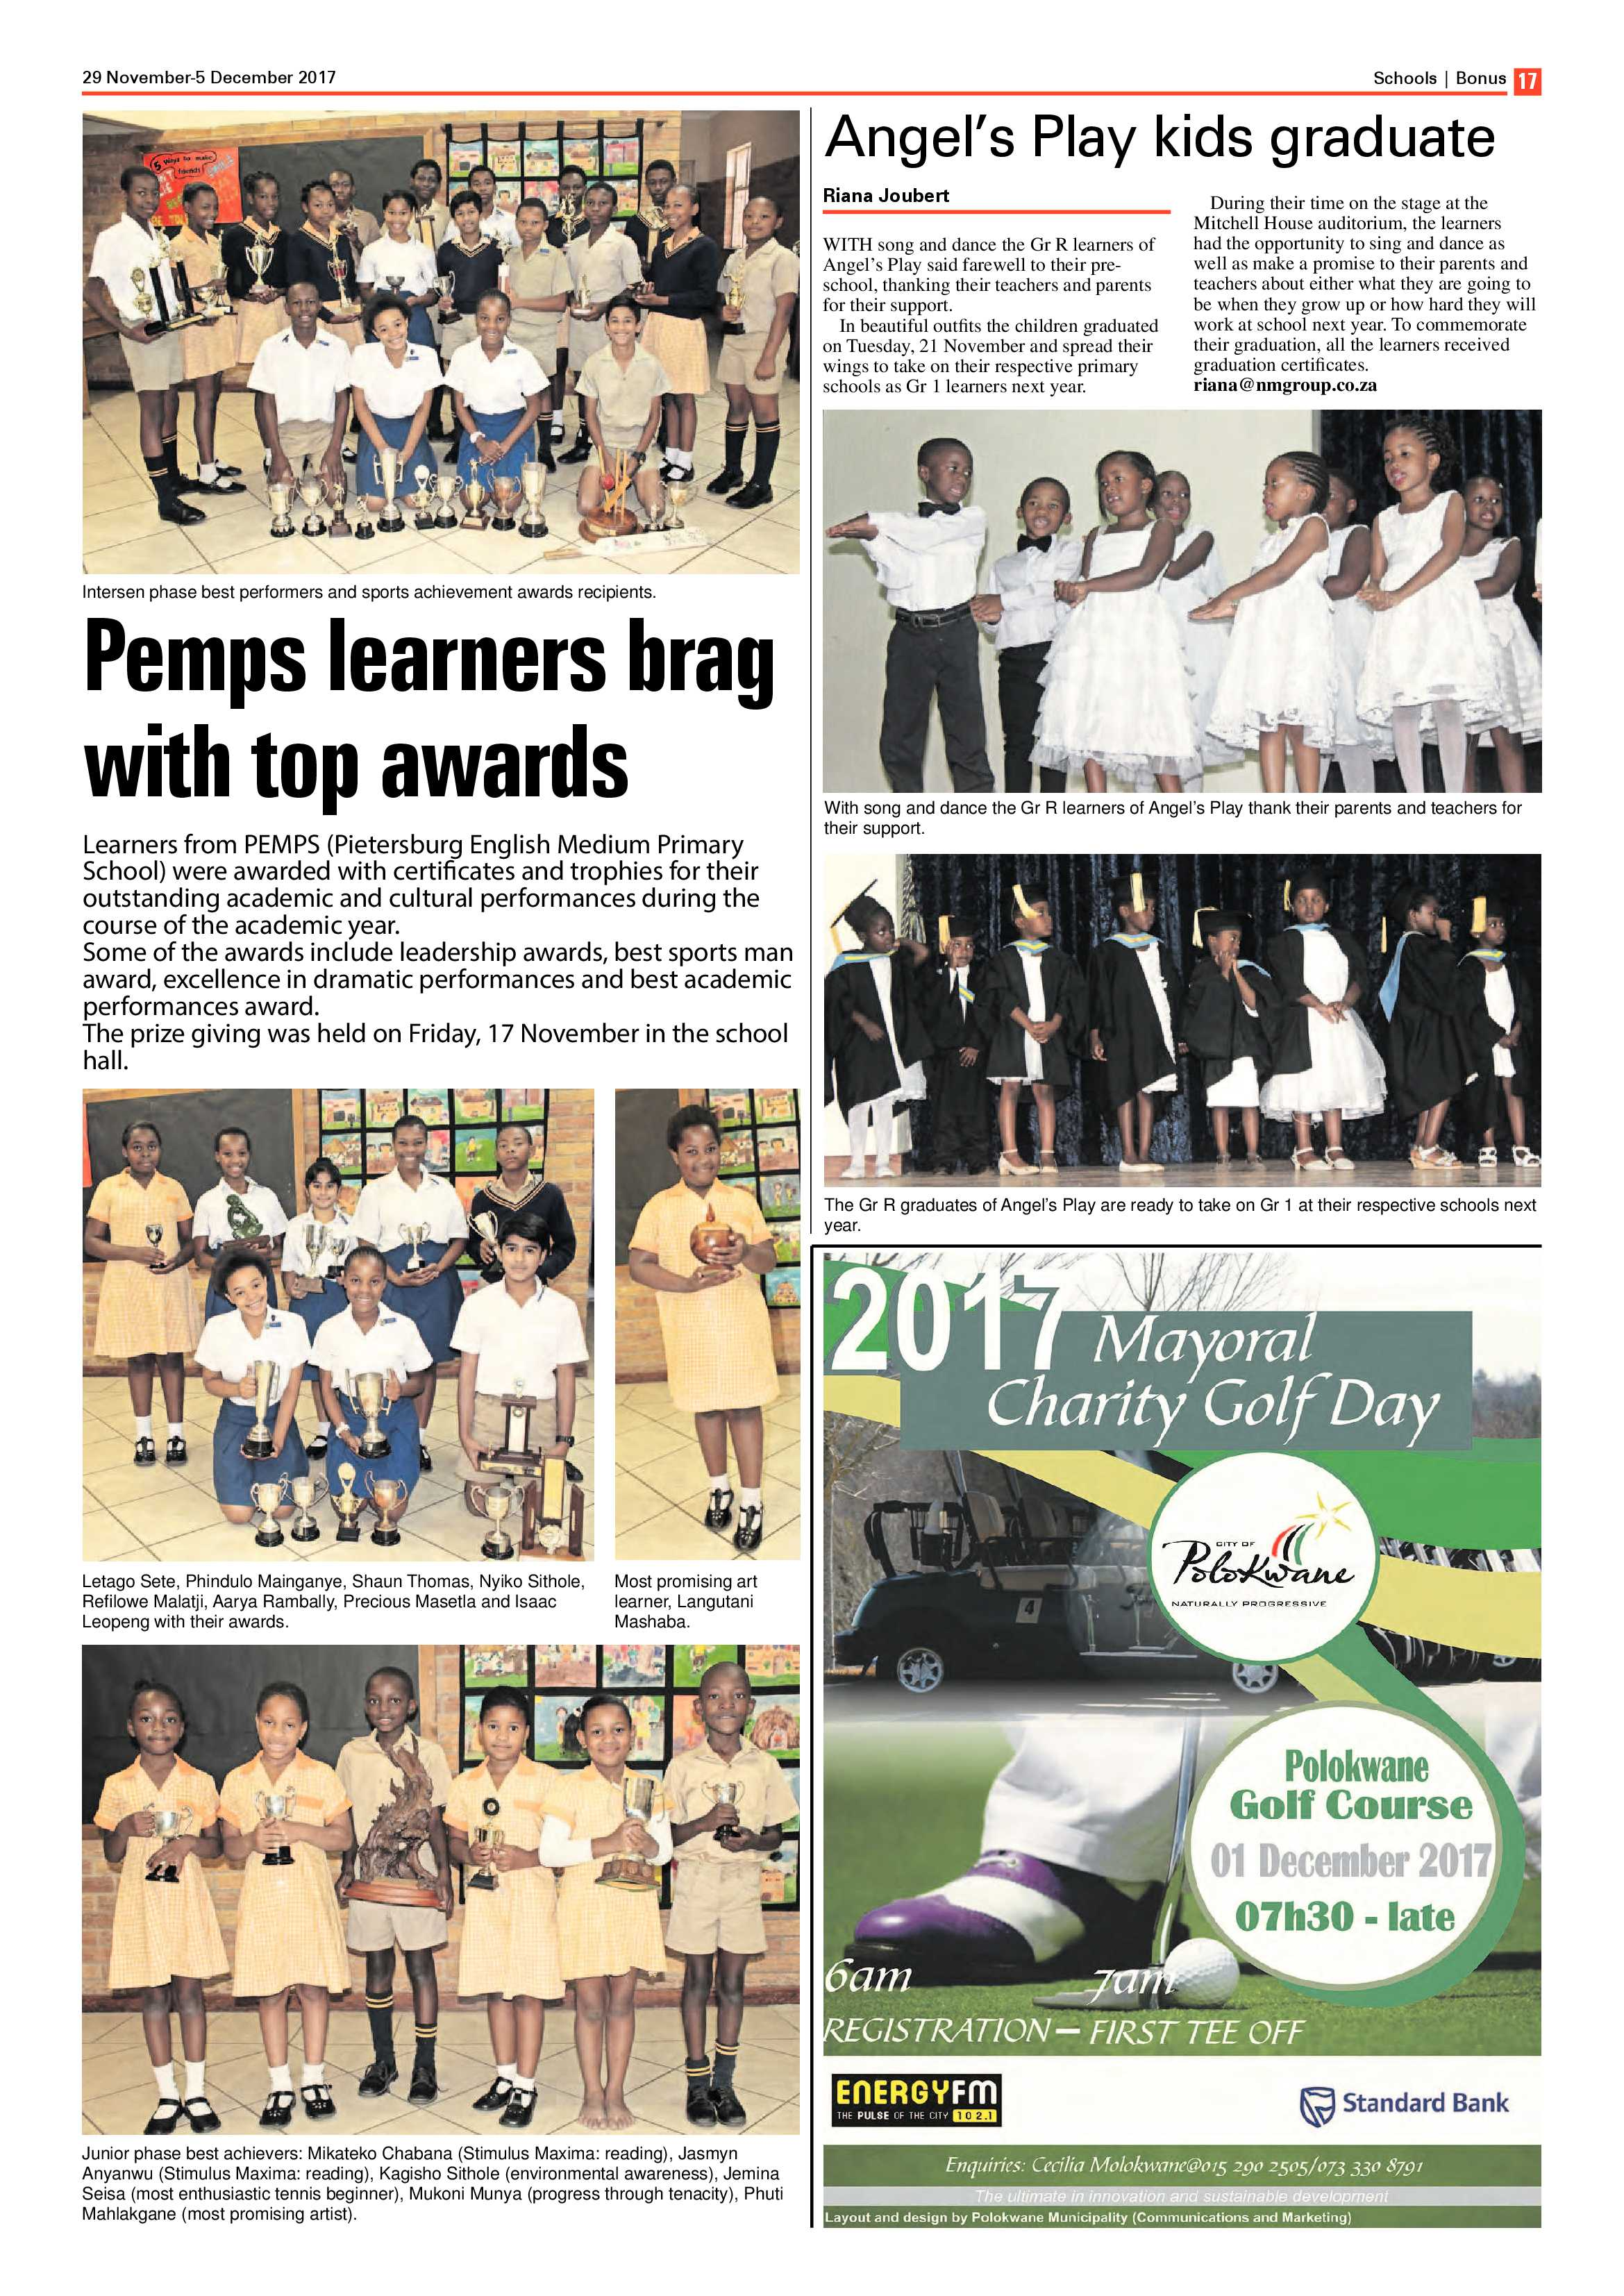 review-bonus-29-november-2017-epapers-page-17